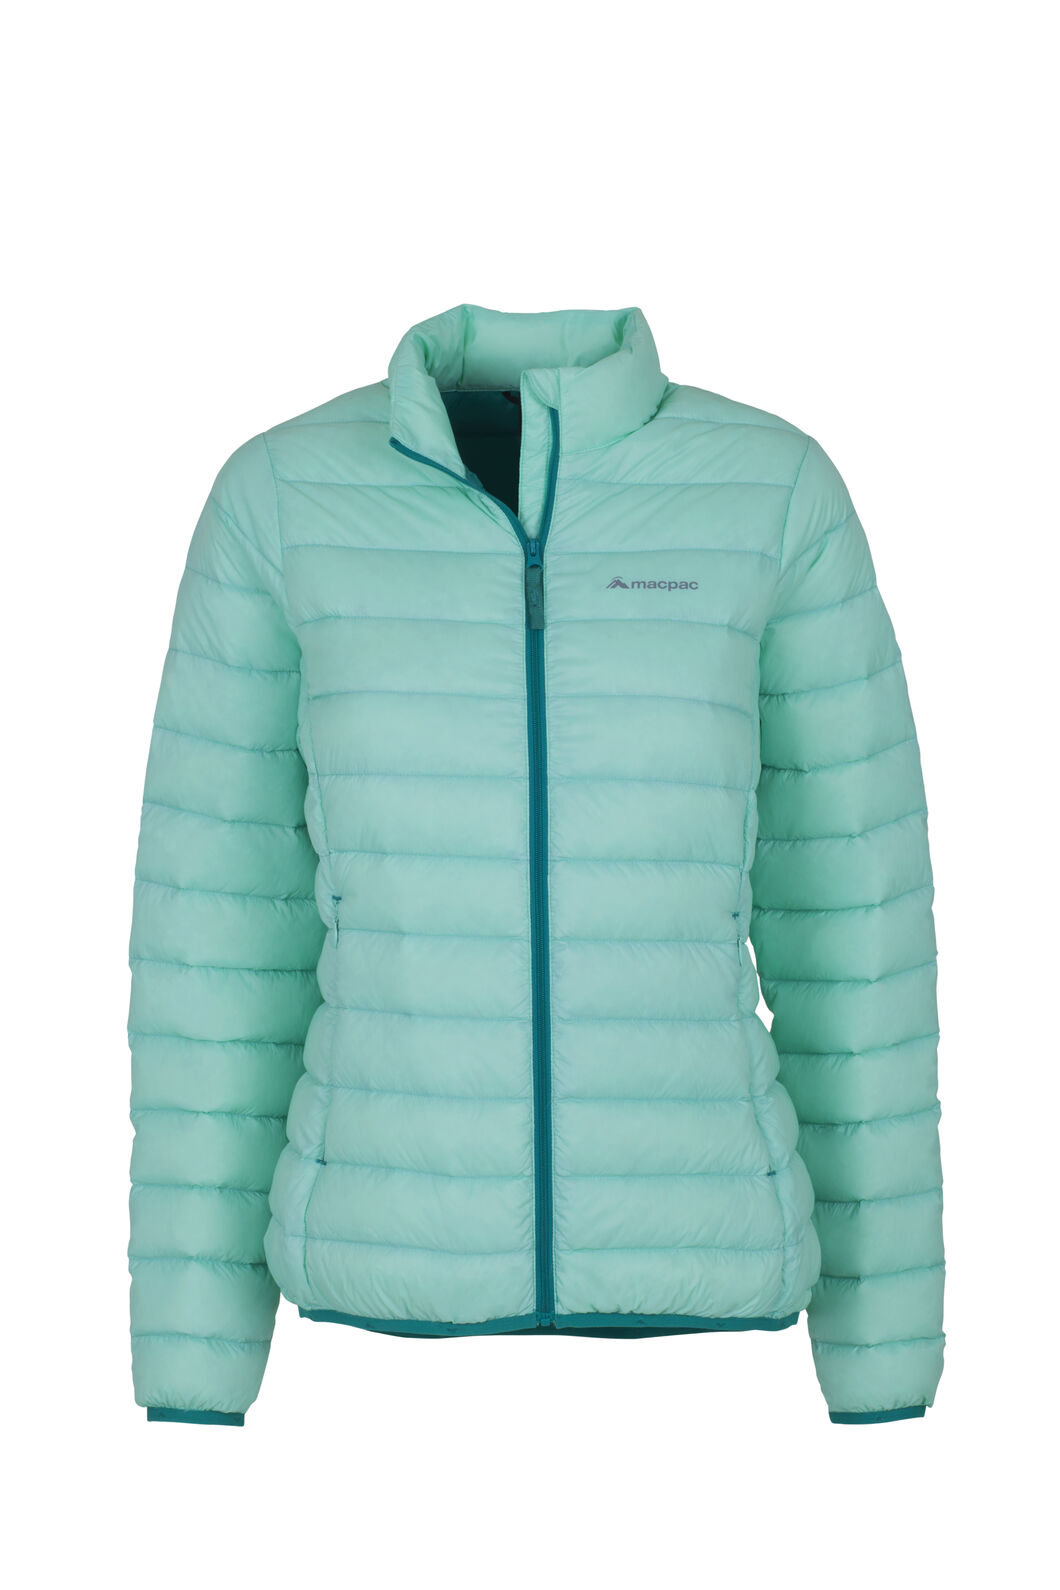 Macpac Uber Light Down Jacket - Women's, Ocean Wave, hi-res